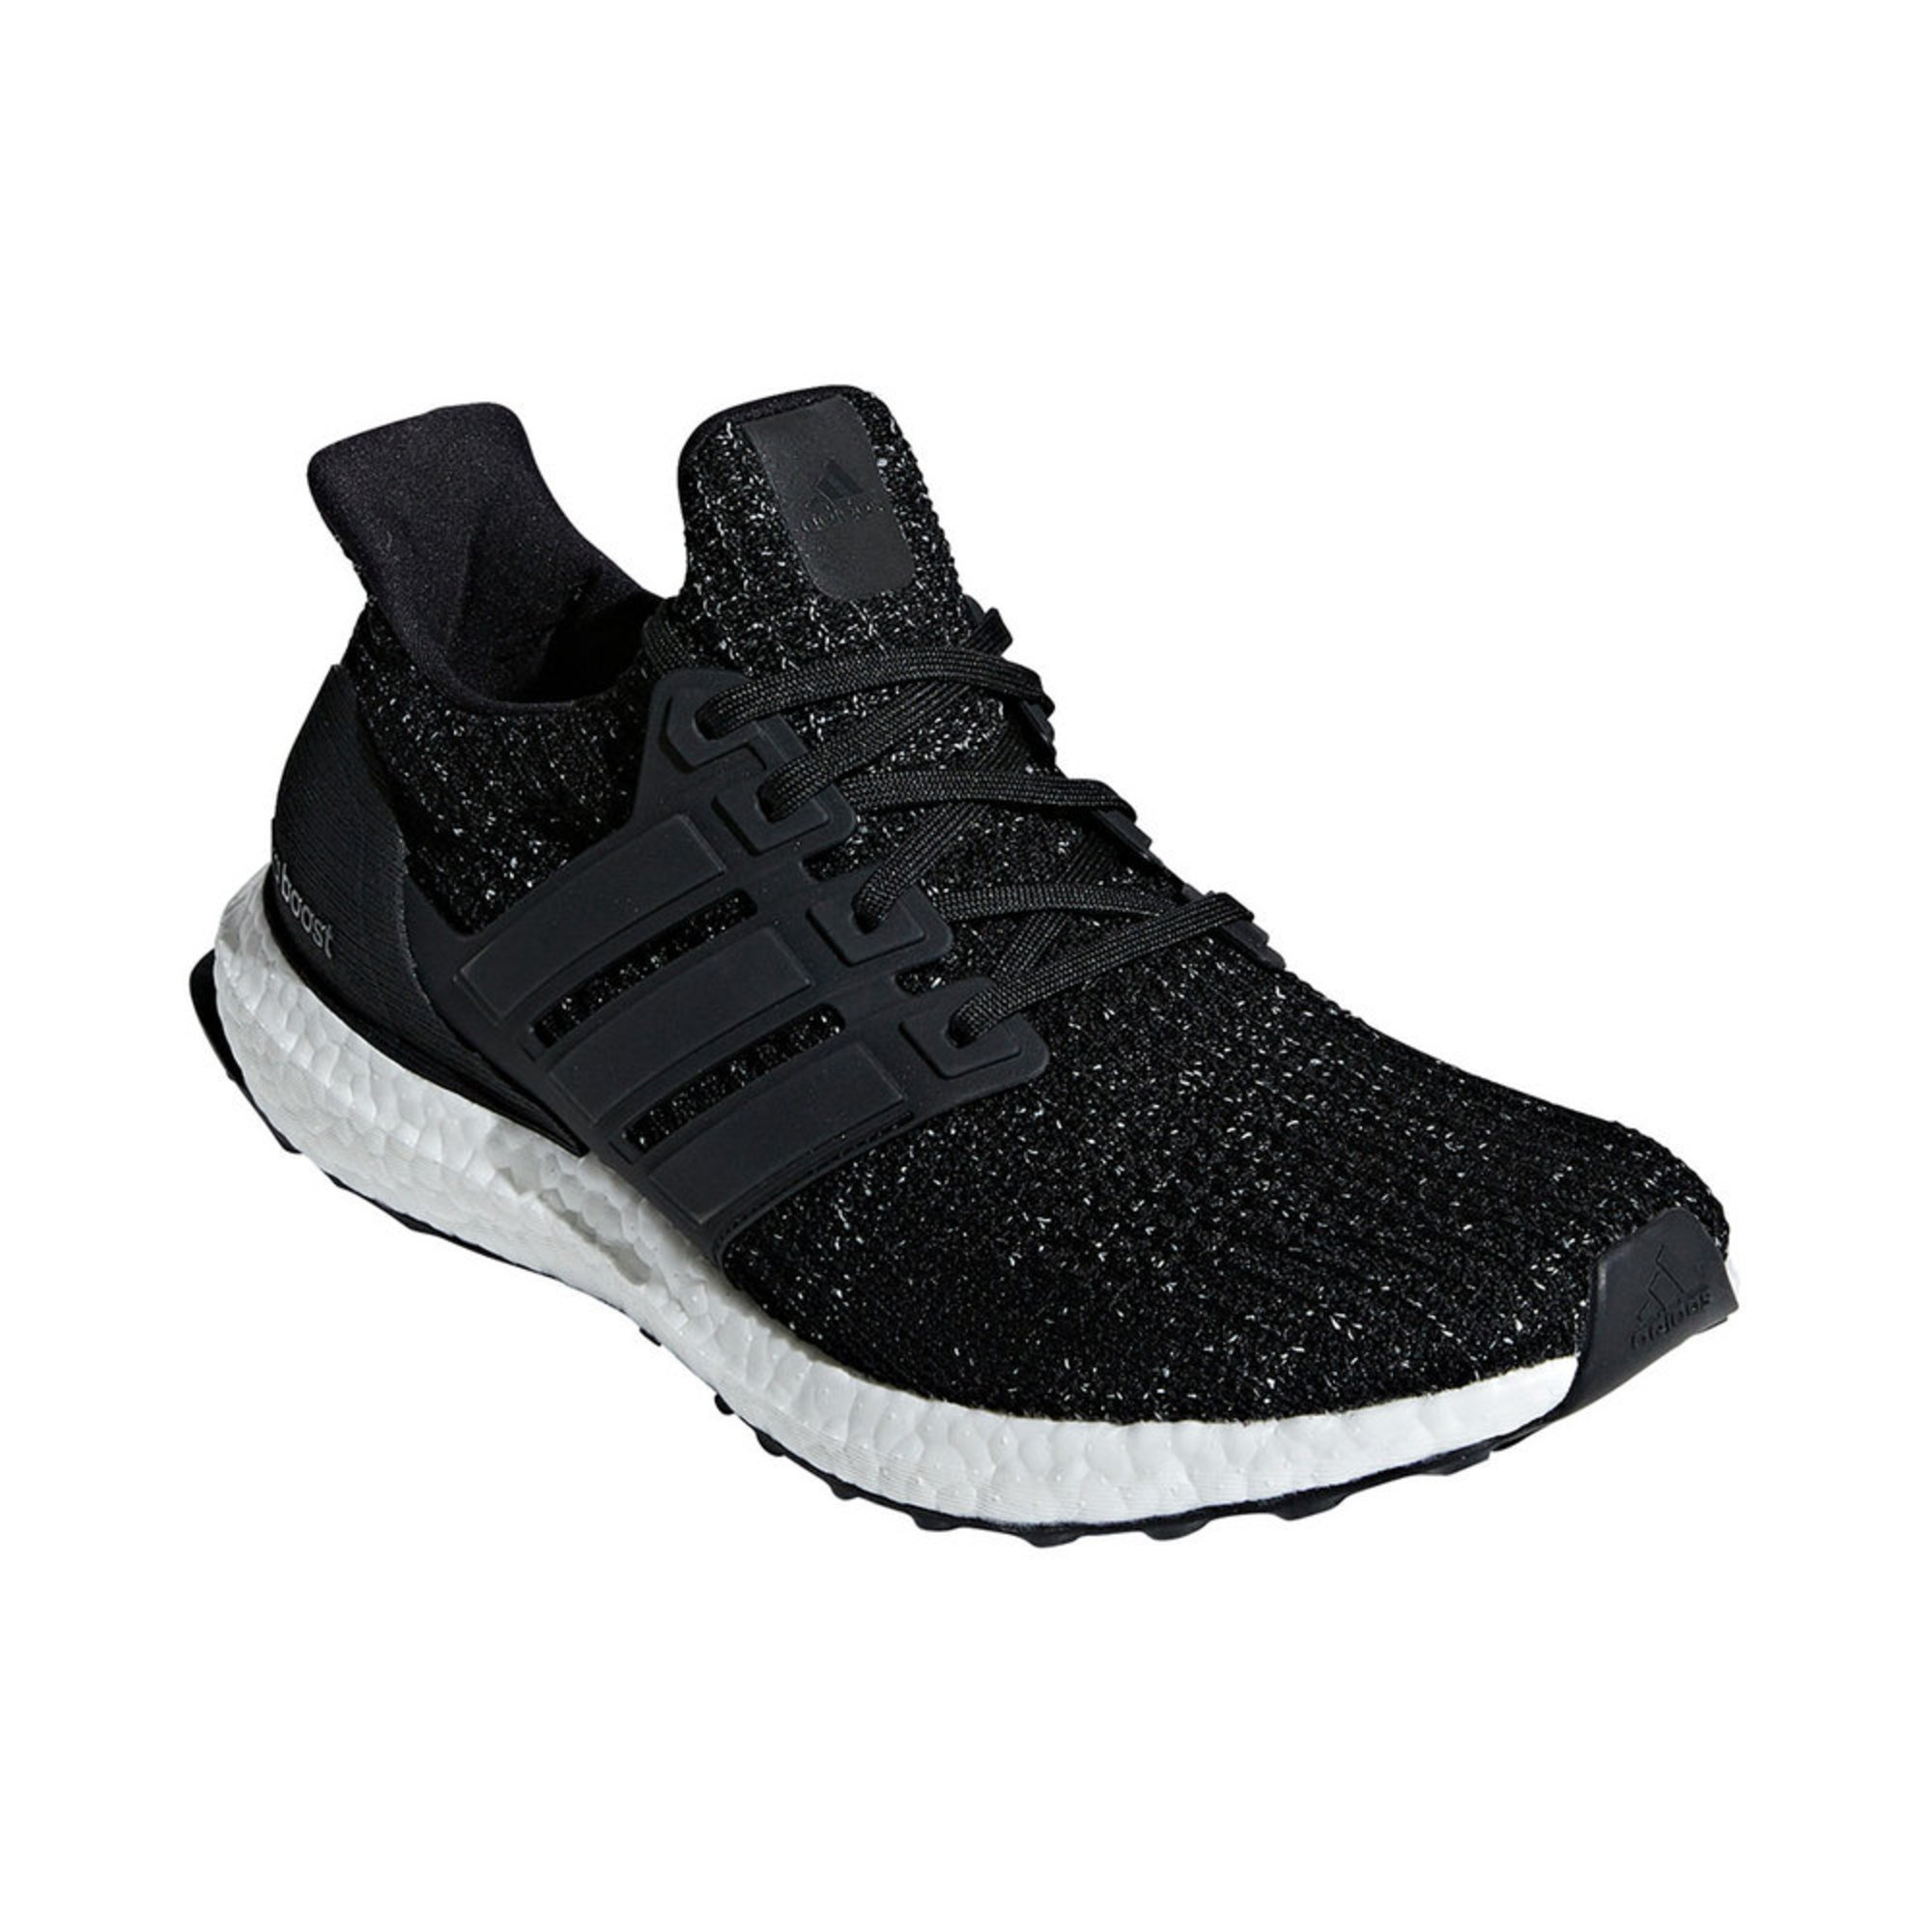 29fc3858c adidas. Adidas Men s UltraBOOST Running Shoe